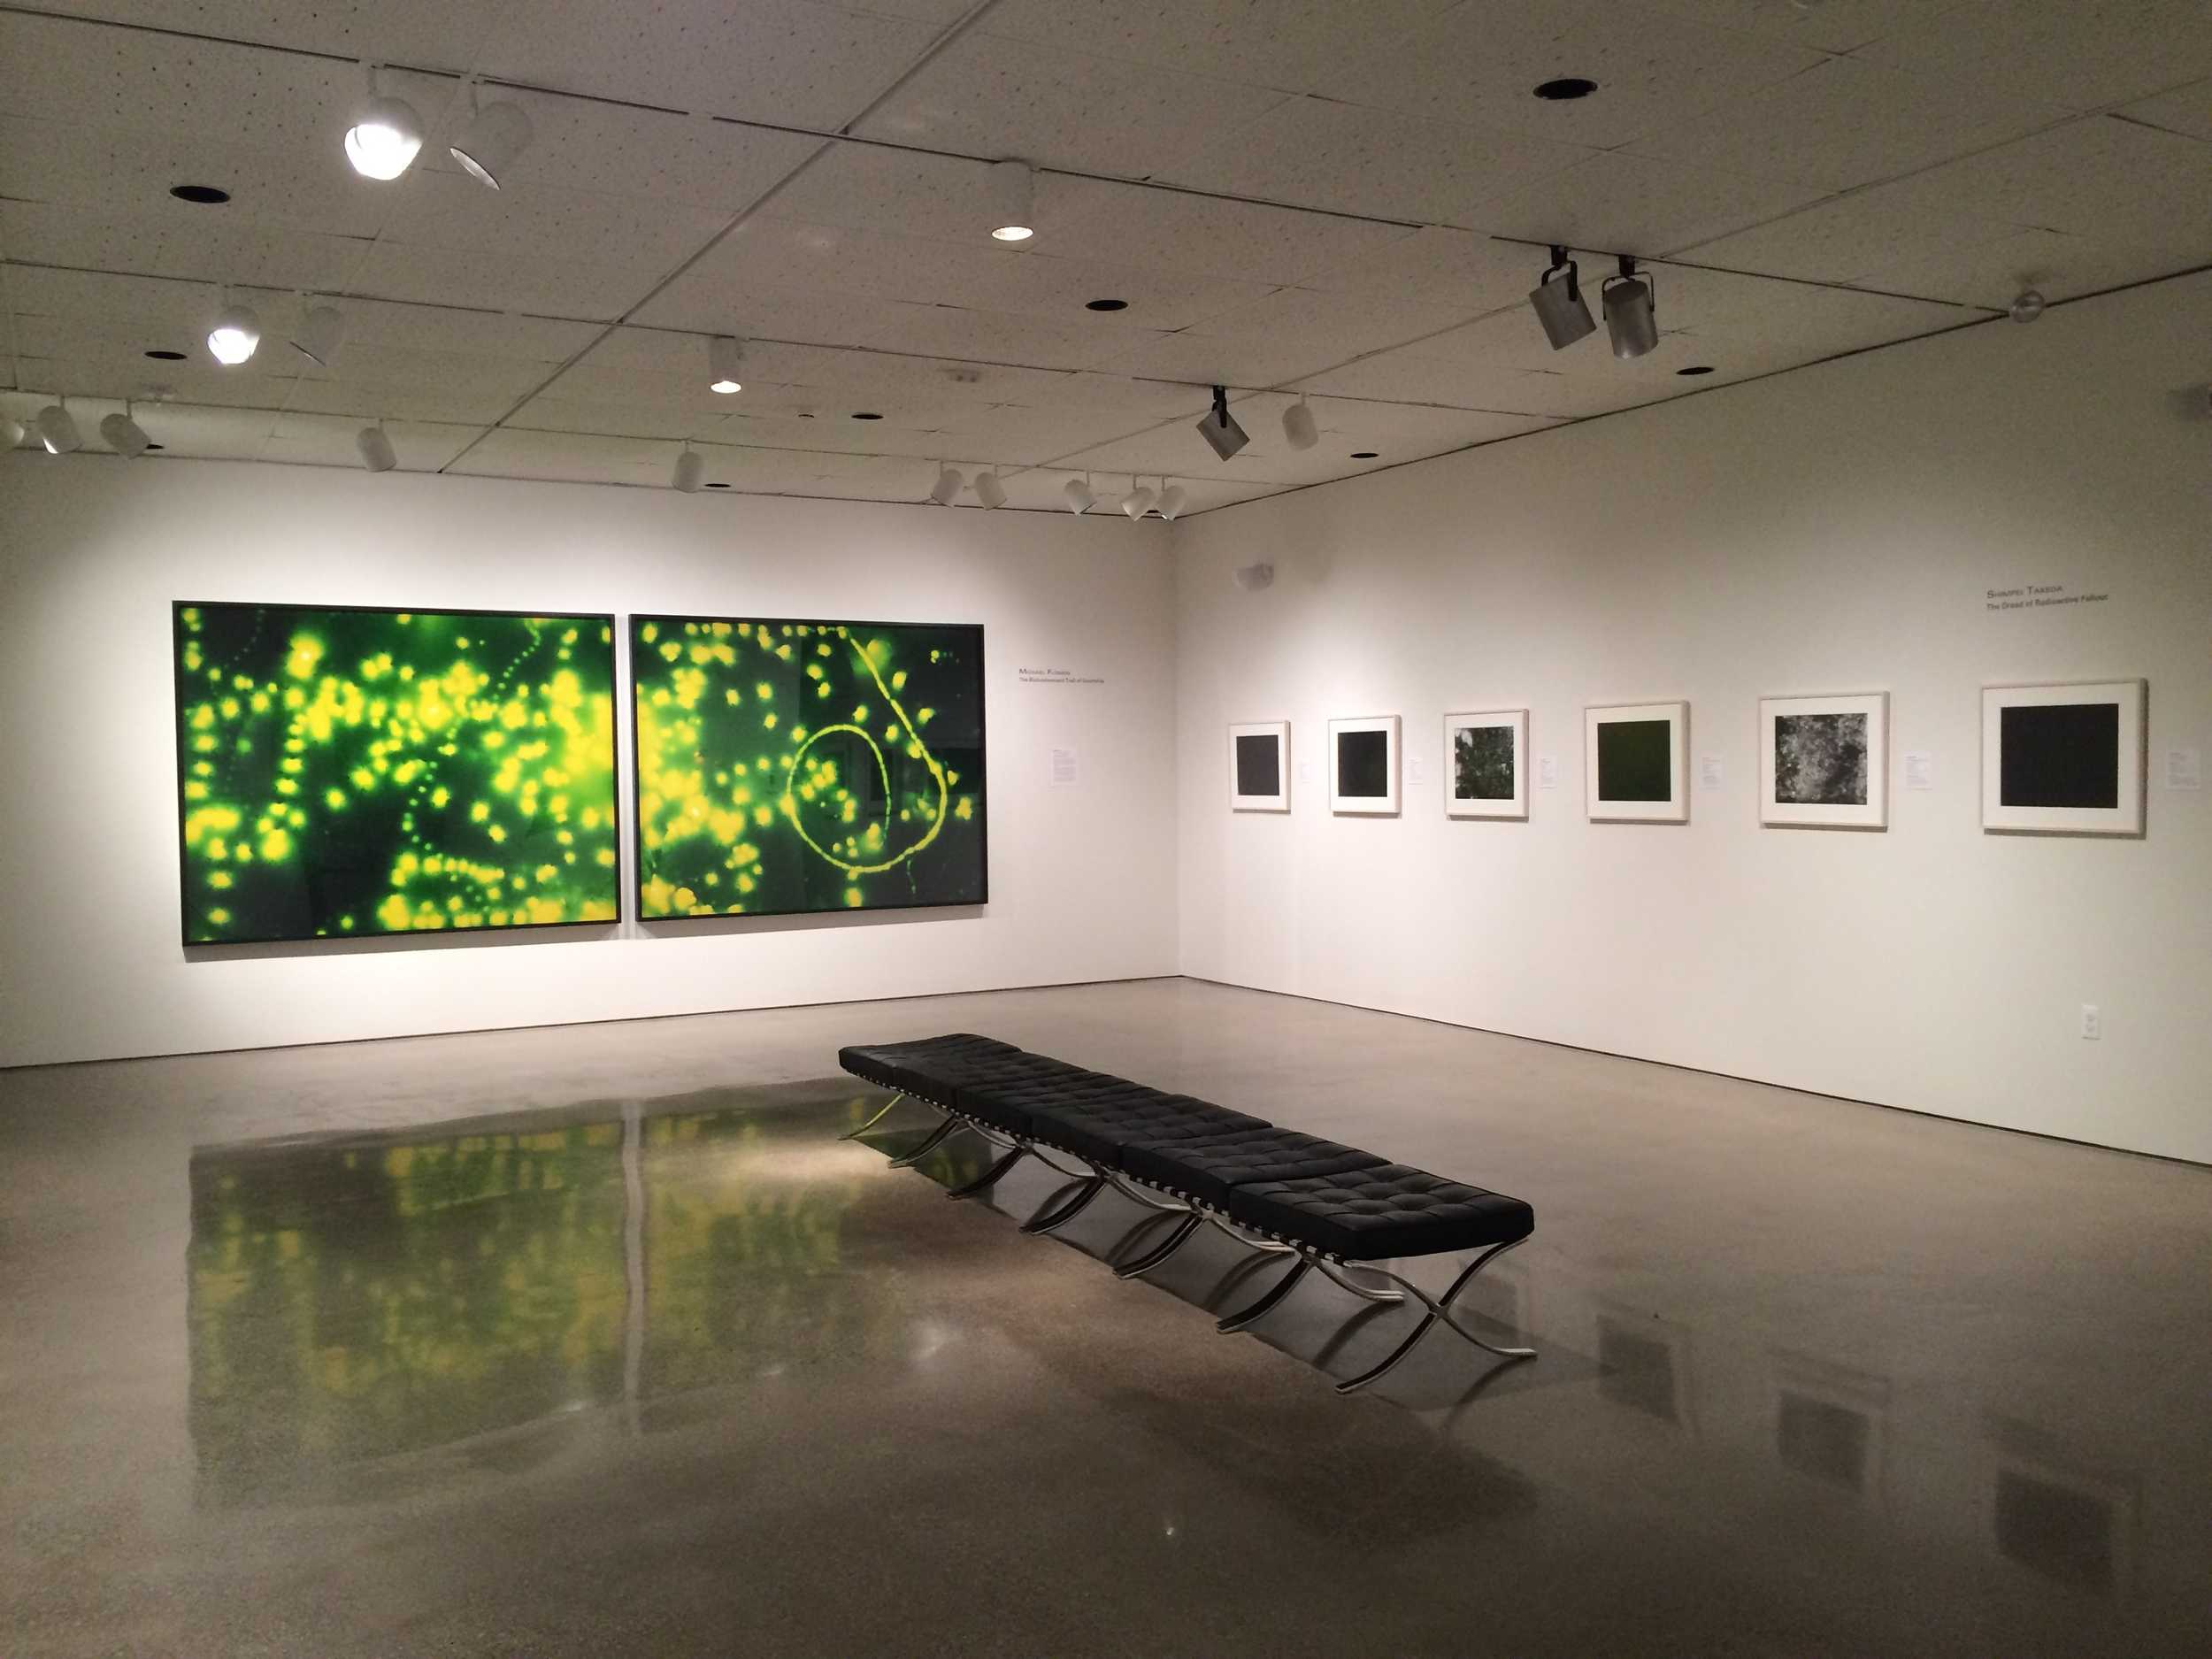 Installation of Double Trouble, 2014.